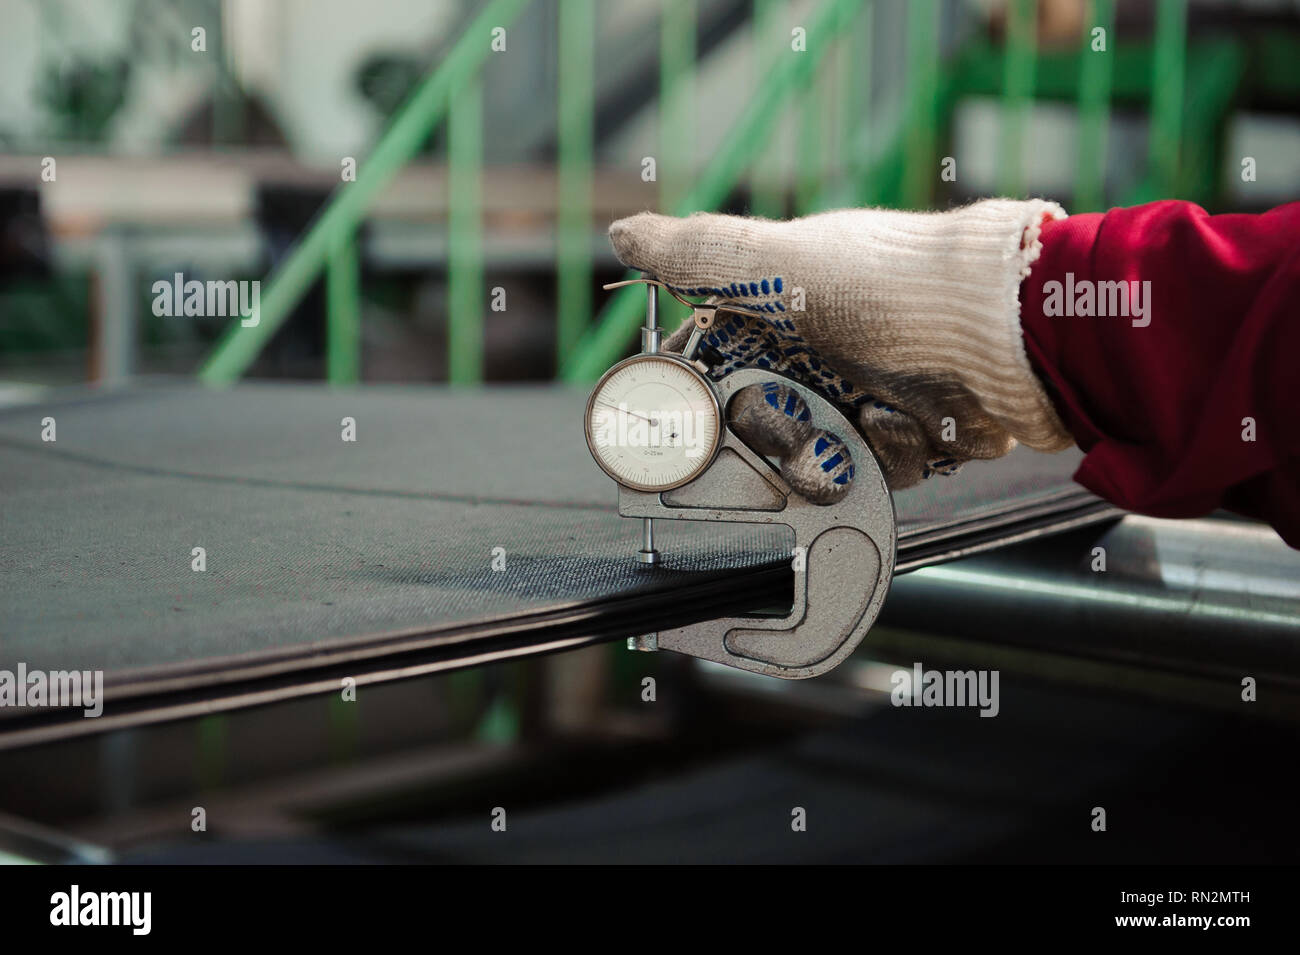 Worker tests production at the rubber plant. - Stock Image